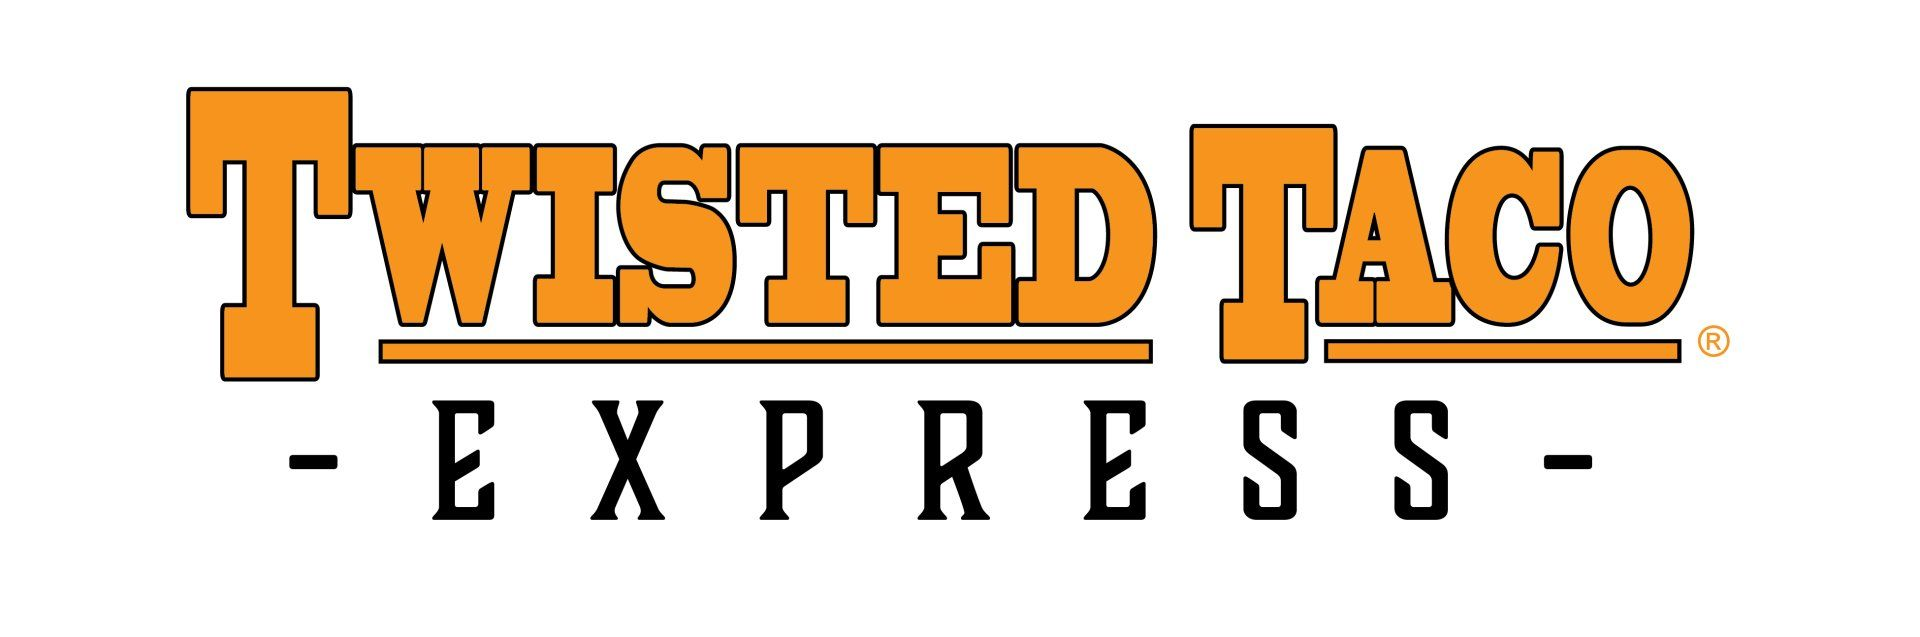 Twisted Taco Express